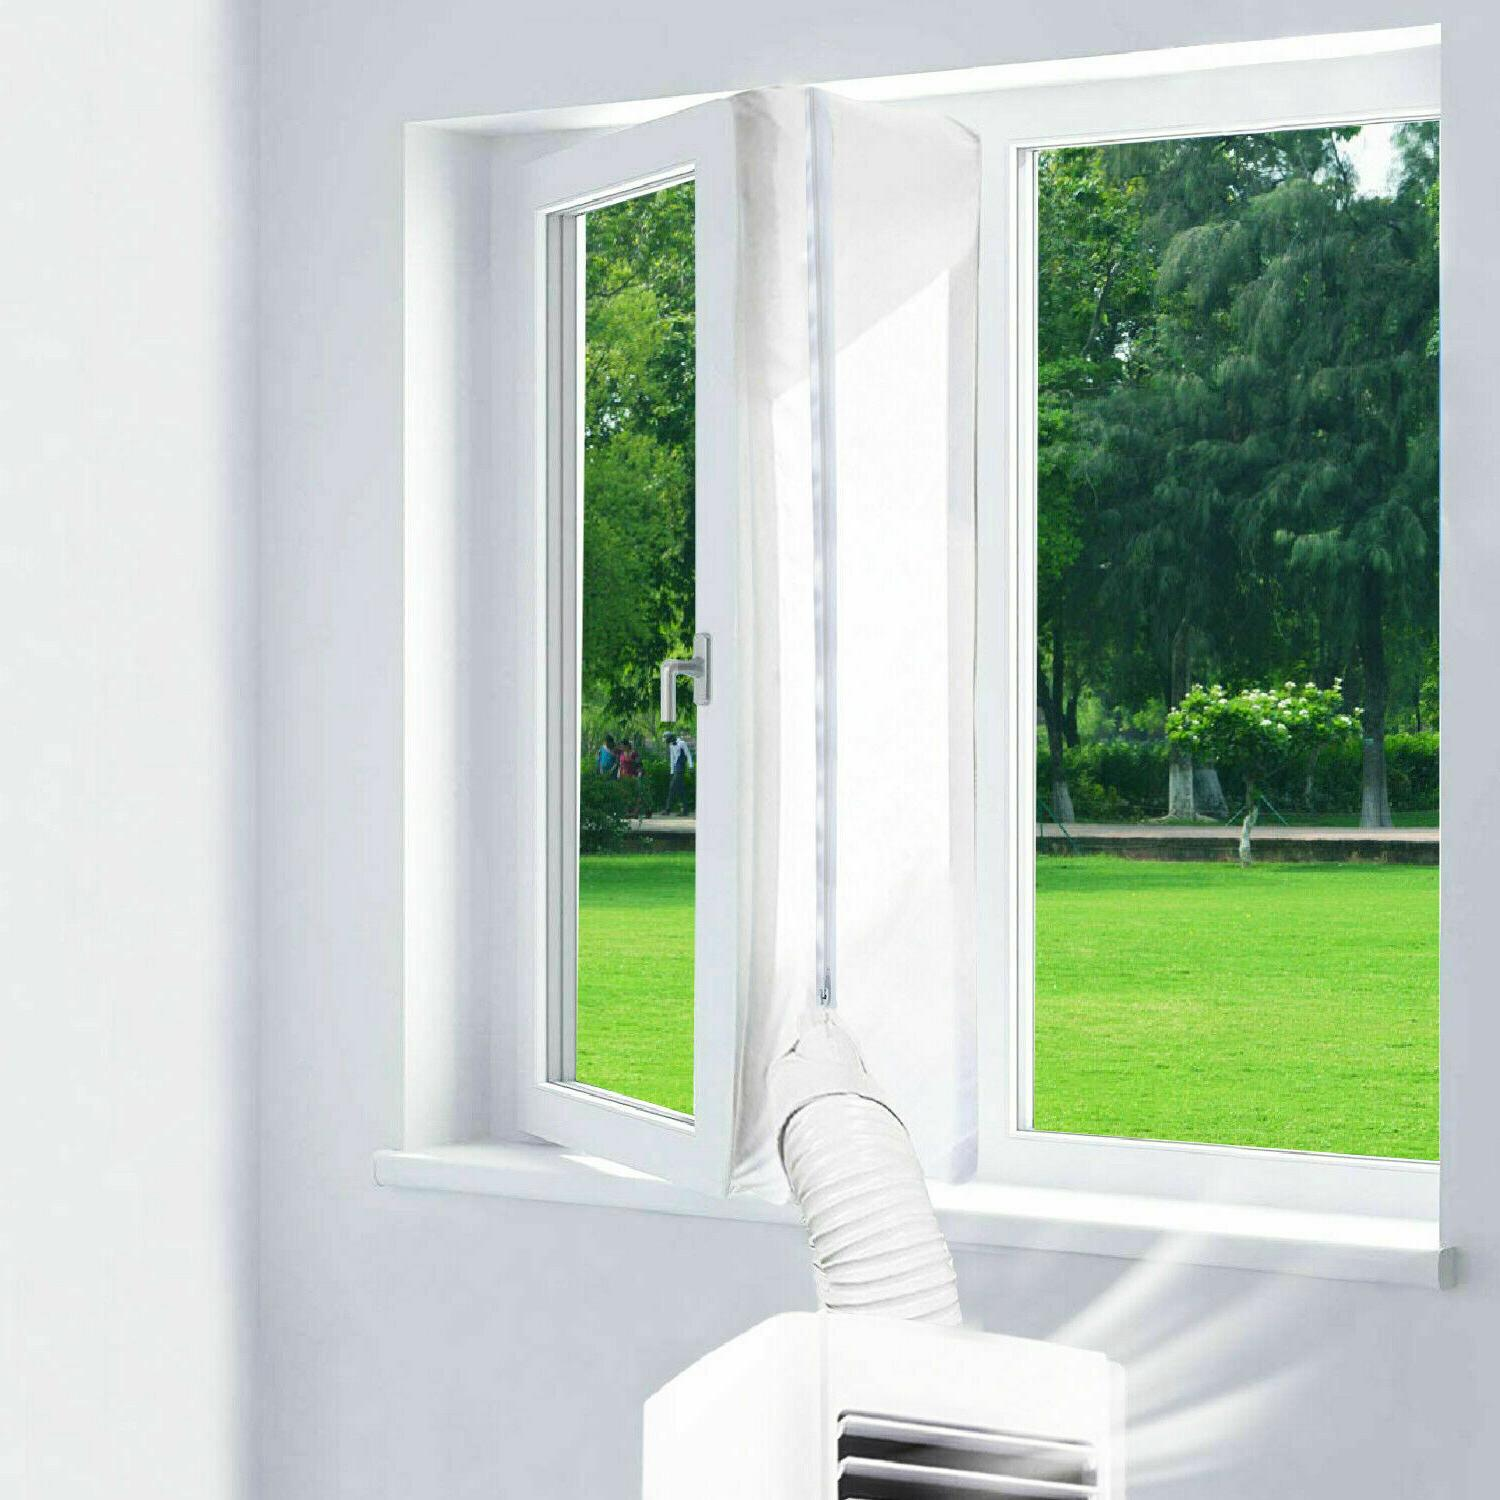 Window Portable Color for air Conditioner Dryer